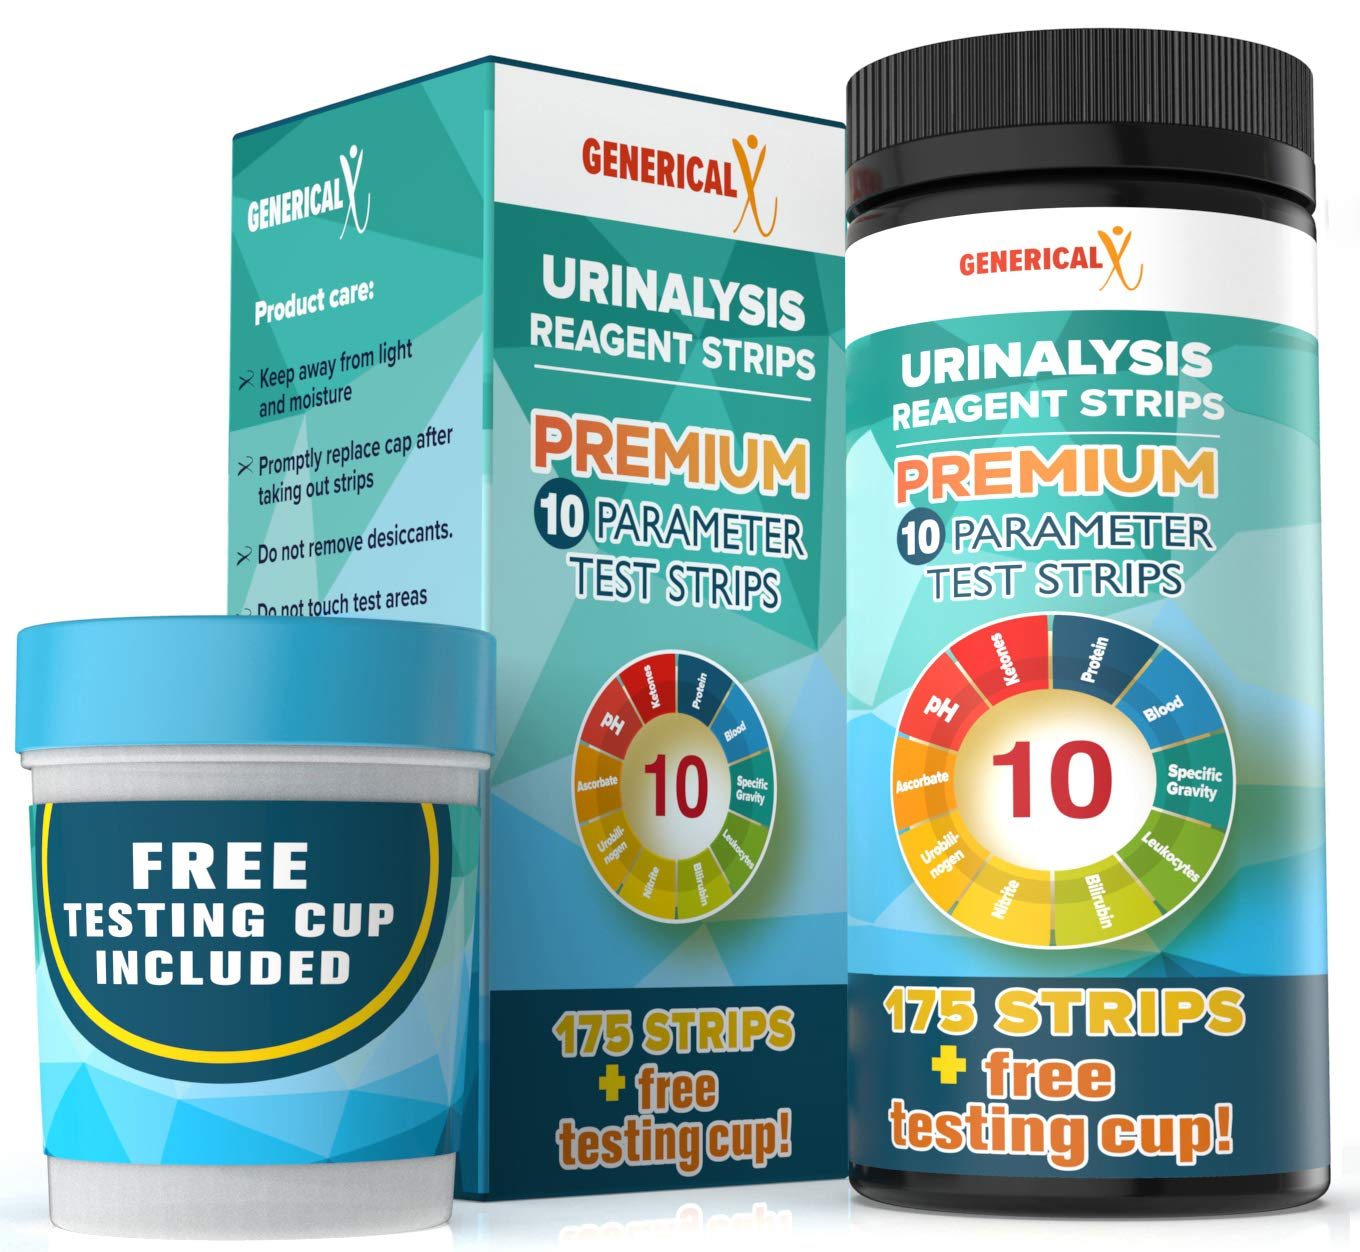 (175 STRIPS + FREE TESTING CUP) |10 Parameter Urine Test Kit | for UTI's, Ketosis, pH, Blood, Protein, Ascorbate | For Gallbladder, Bladder, Urinary Tract, Kidney, Liver Health | FDA-Approved Reagents by Generical X